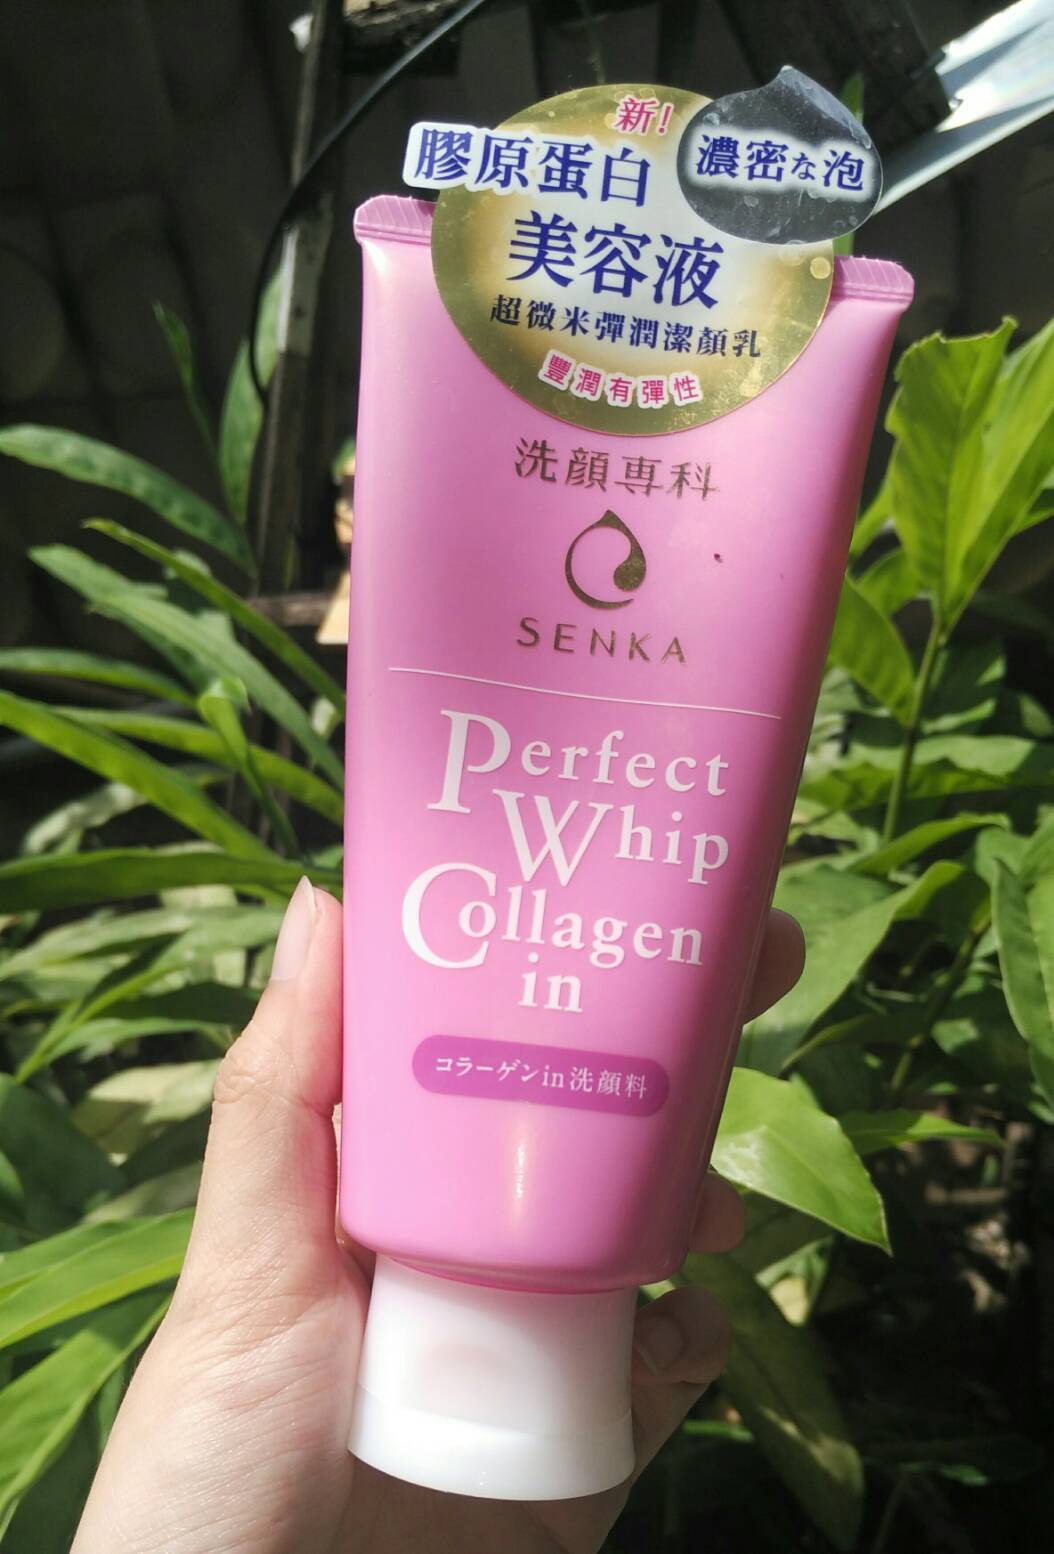 Senka perfect whip collagen in